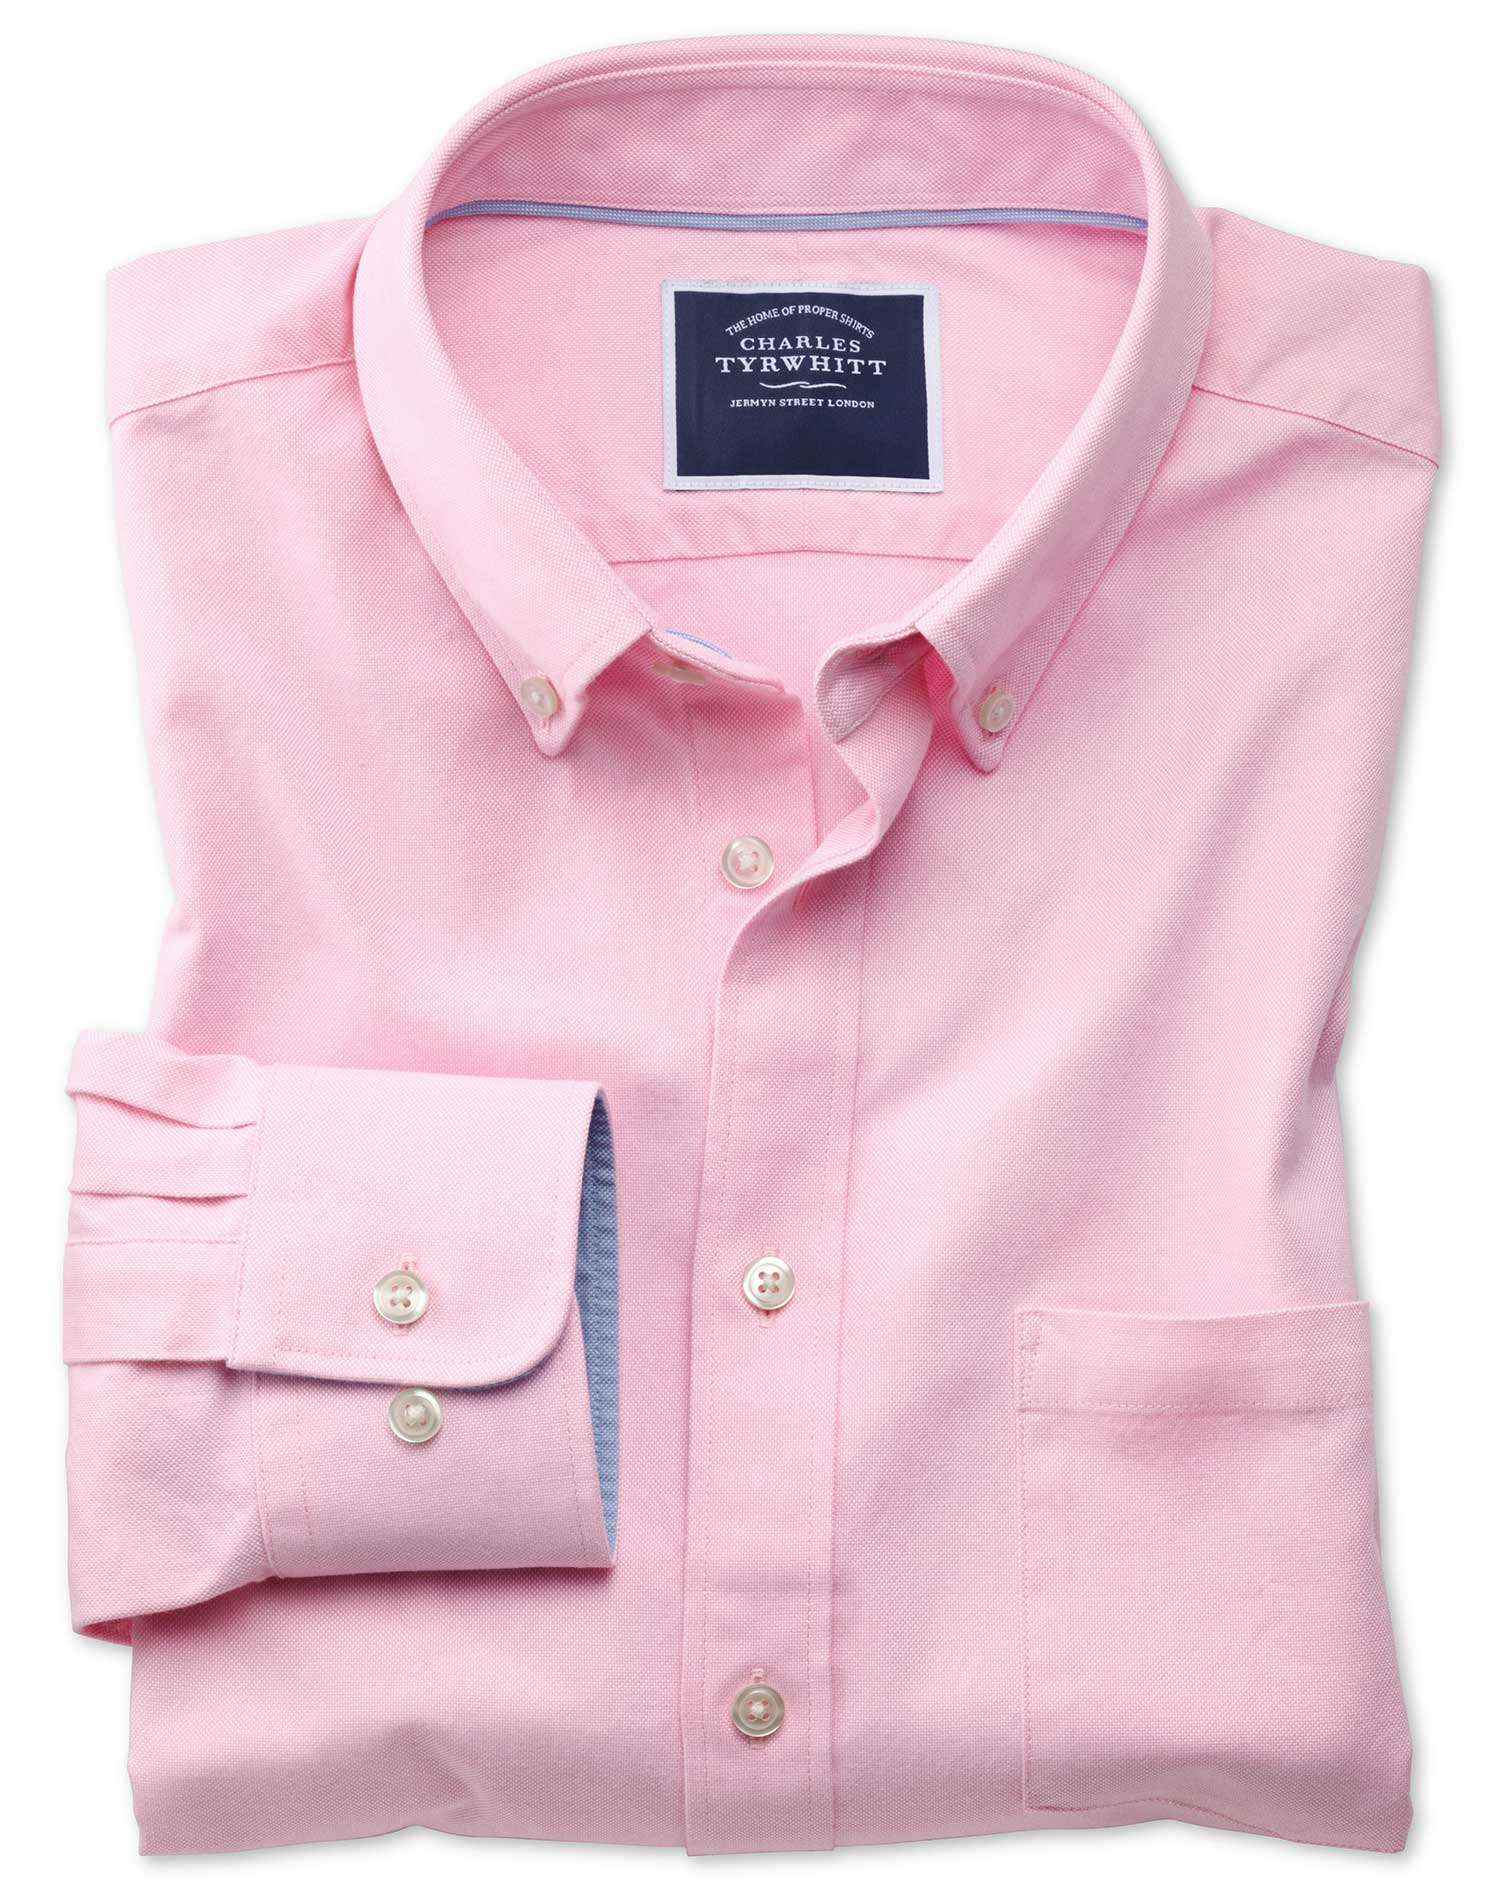 Slim Fit Button-Down Washed Oxford Plain Light Pink Cotton Shirt Single Cuff Size XXL by Charles Tyr